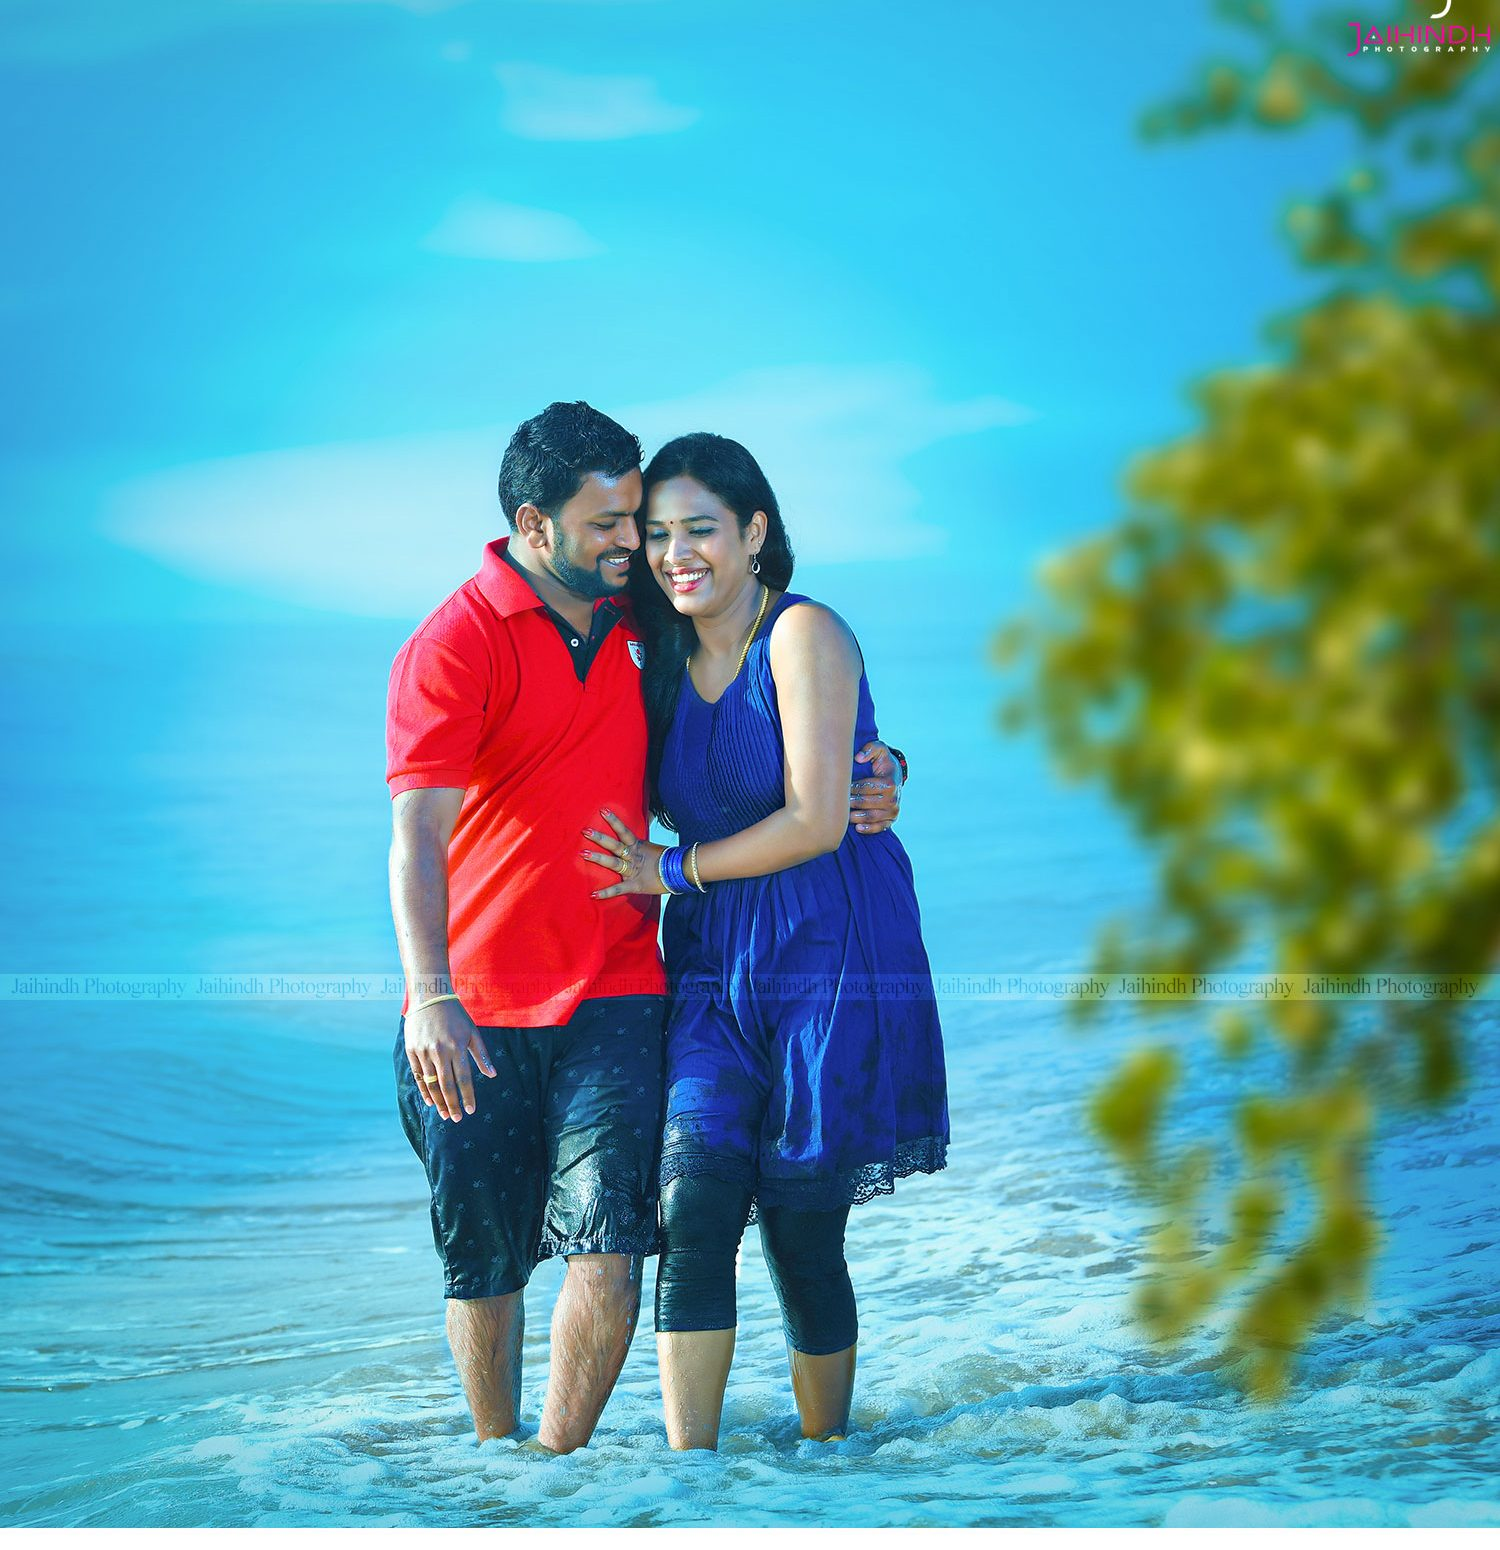 Candid Photographers In Ambur, Candid Wedding Photographers In Ambur, Creative Photographers In Ambur, Professional Wedding Photographers In Ambur